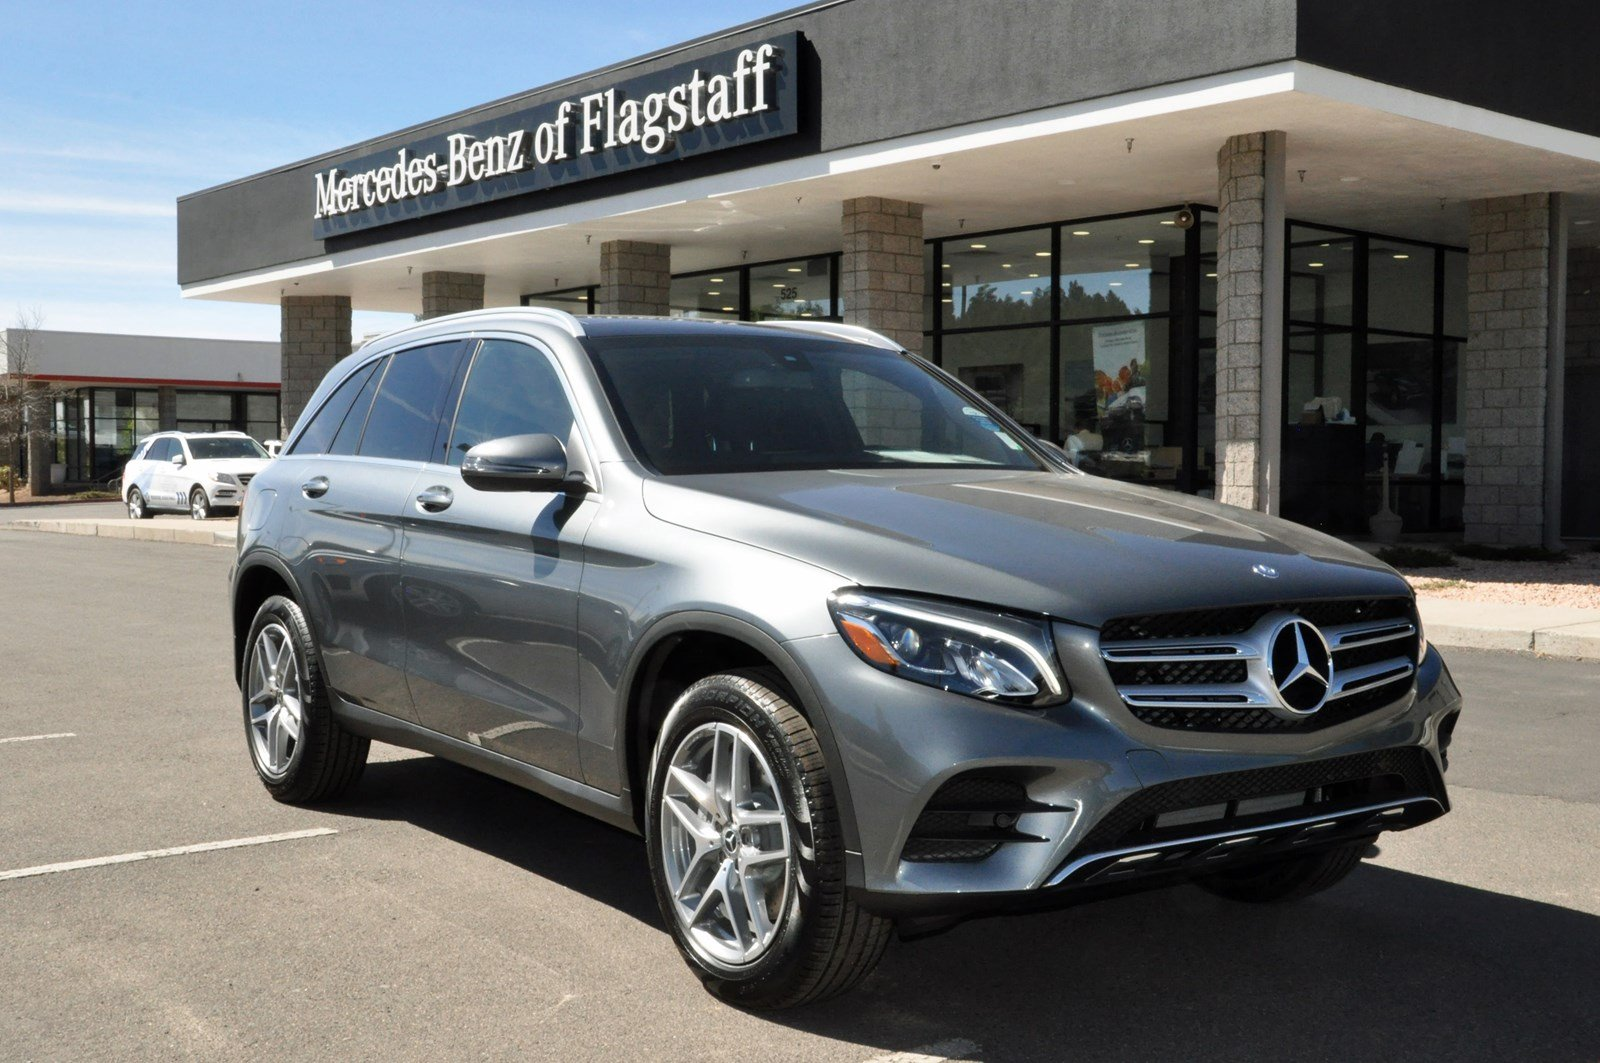 New 2017 mercedes benz glc glc 300 sport utility in for Mercedes benz glc 300 accessories